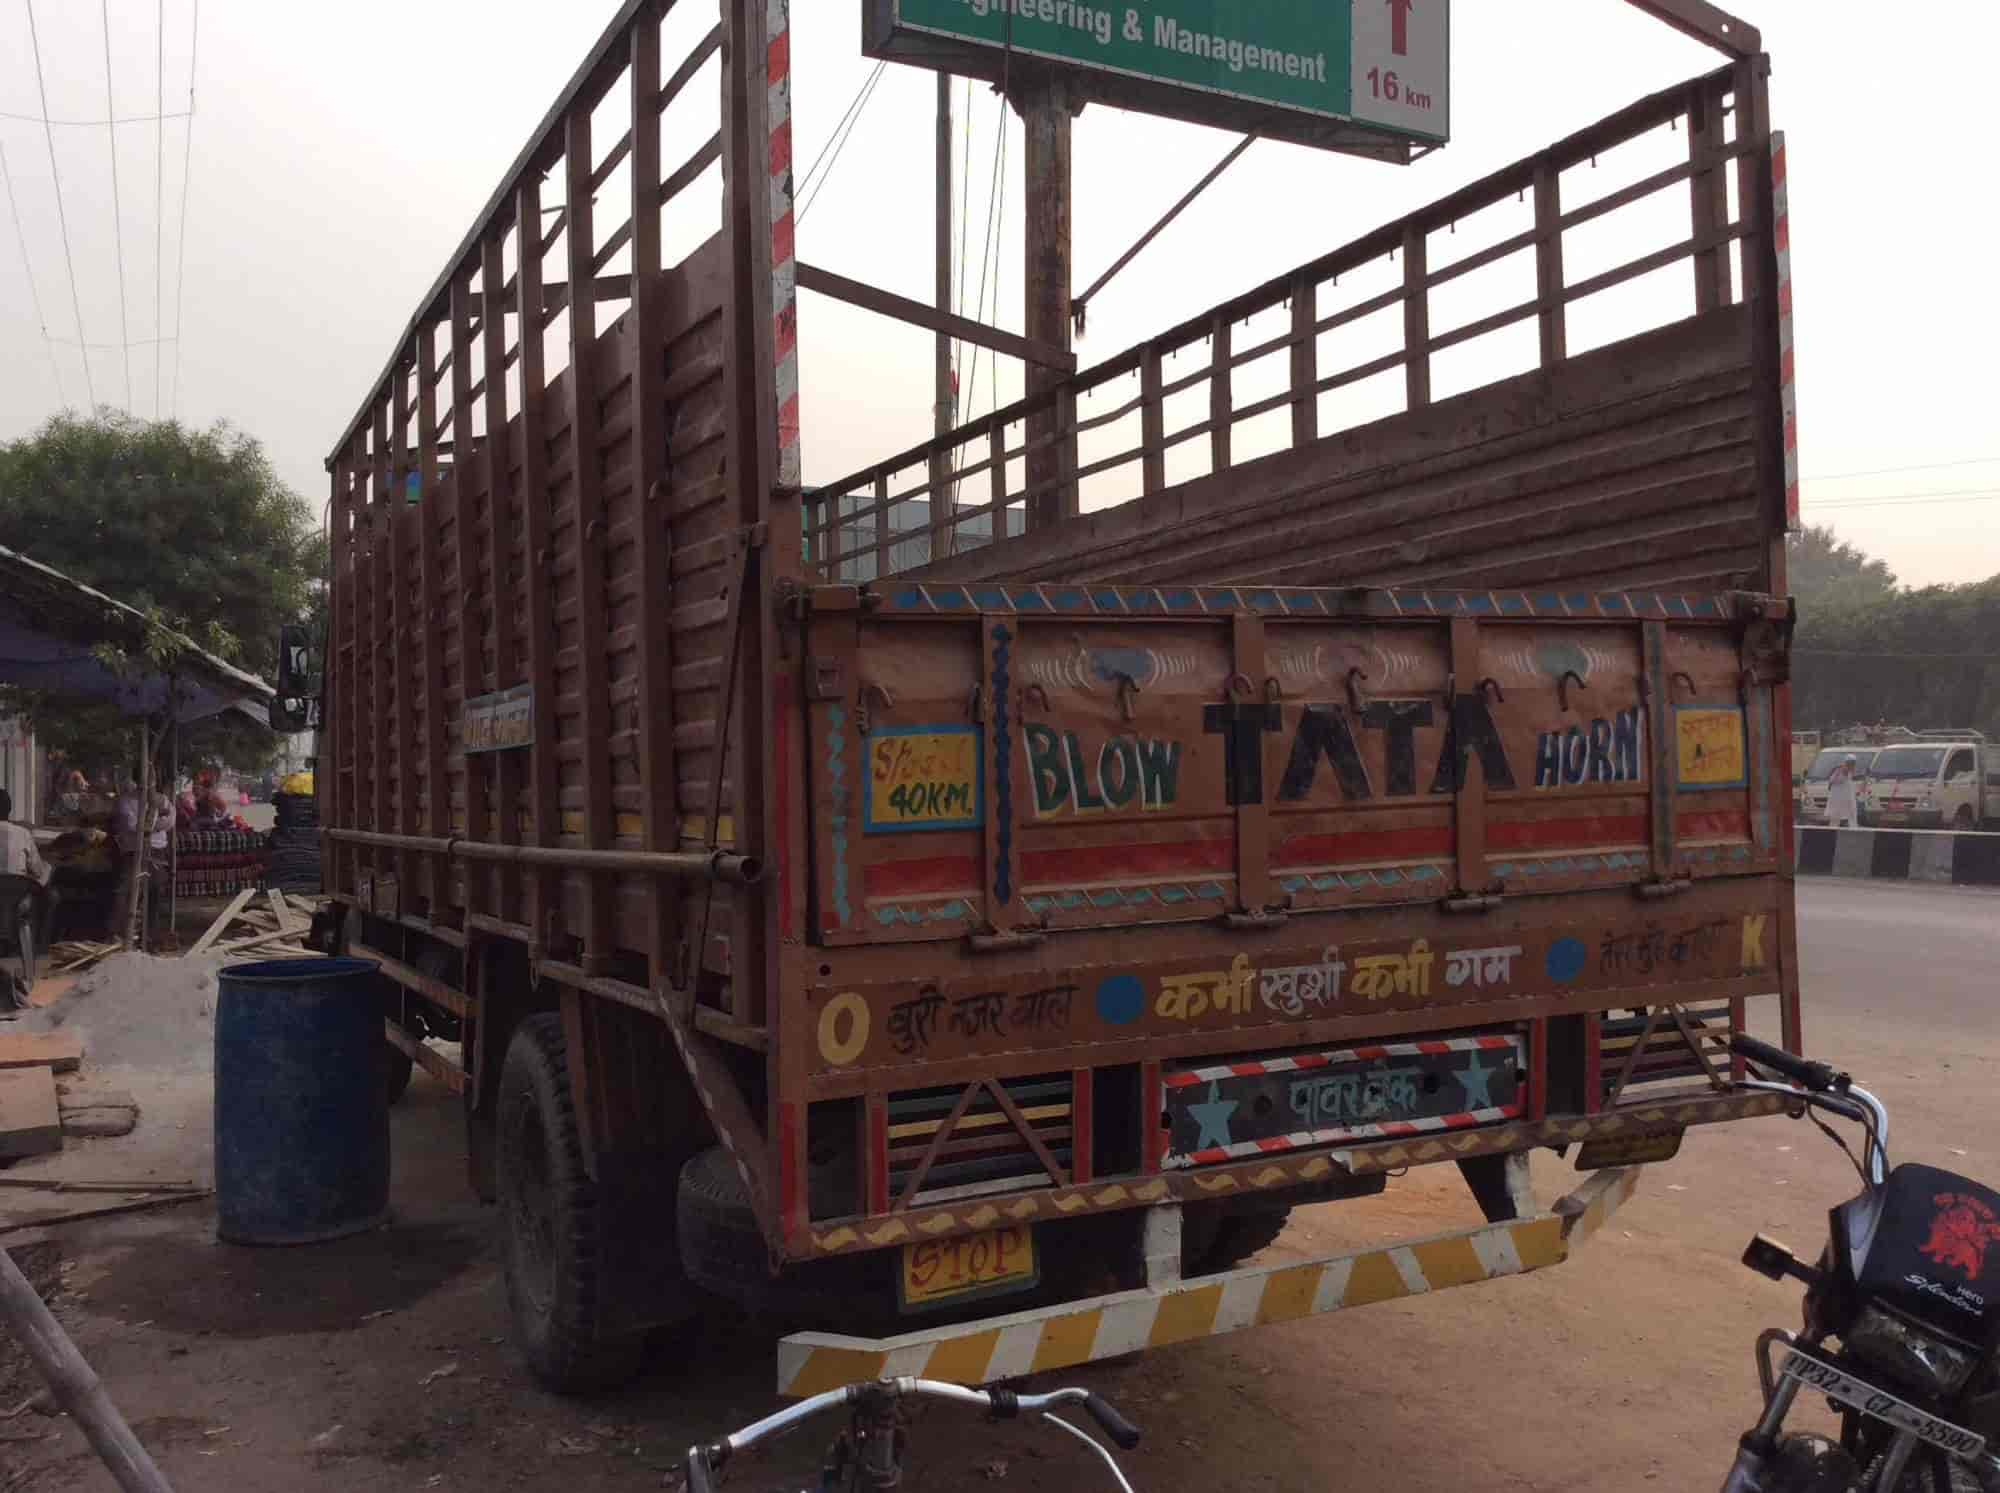 New Rajasthan Transport Agency, Sitapur Rd Lucknow - Transporters in  Lucknow - Justdial